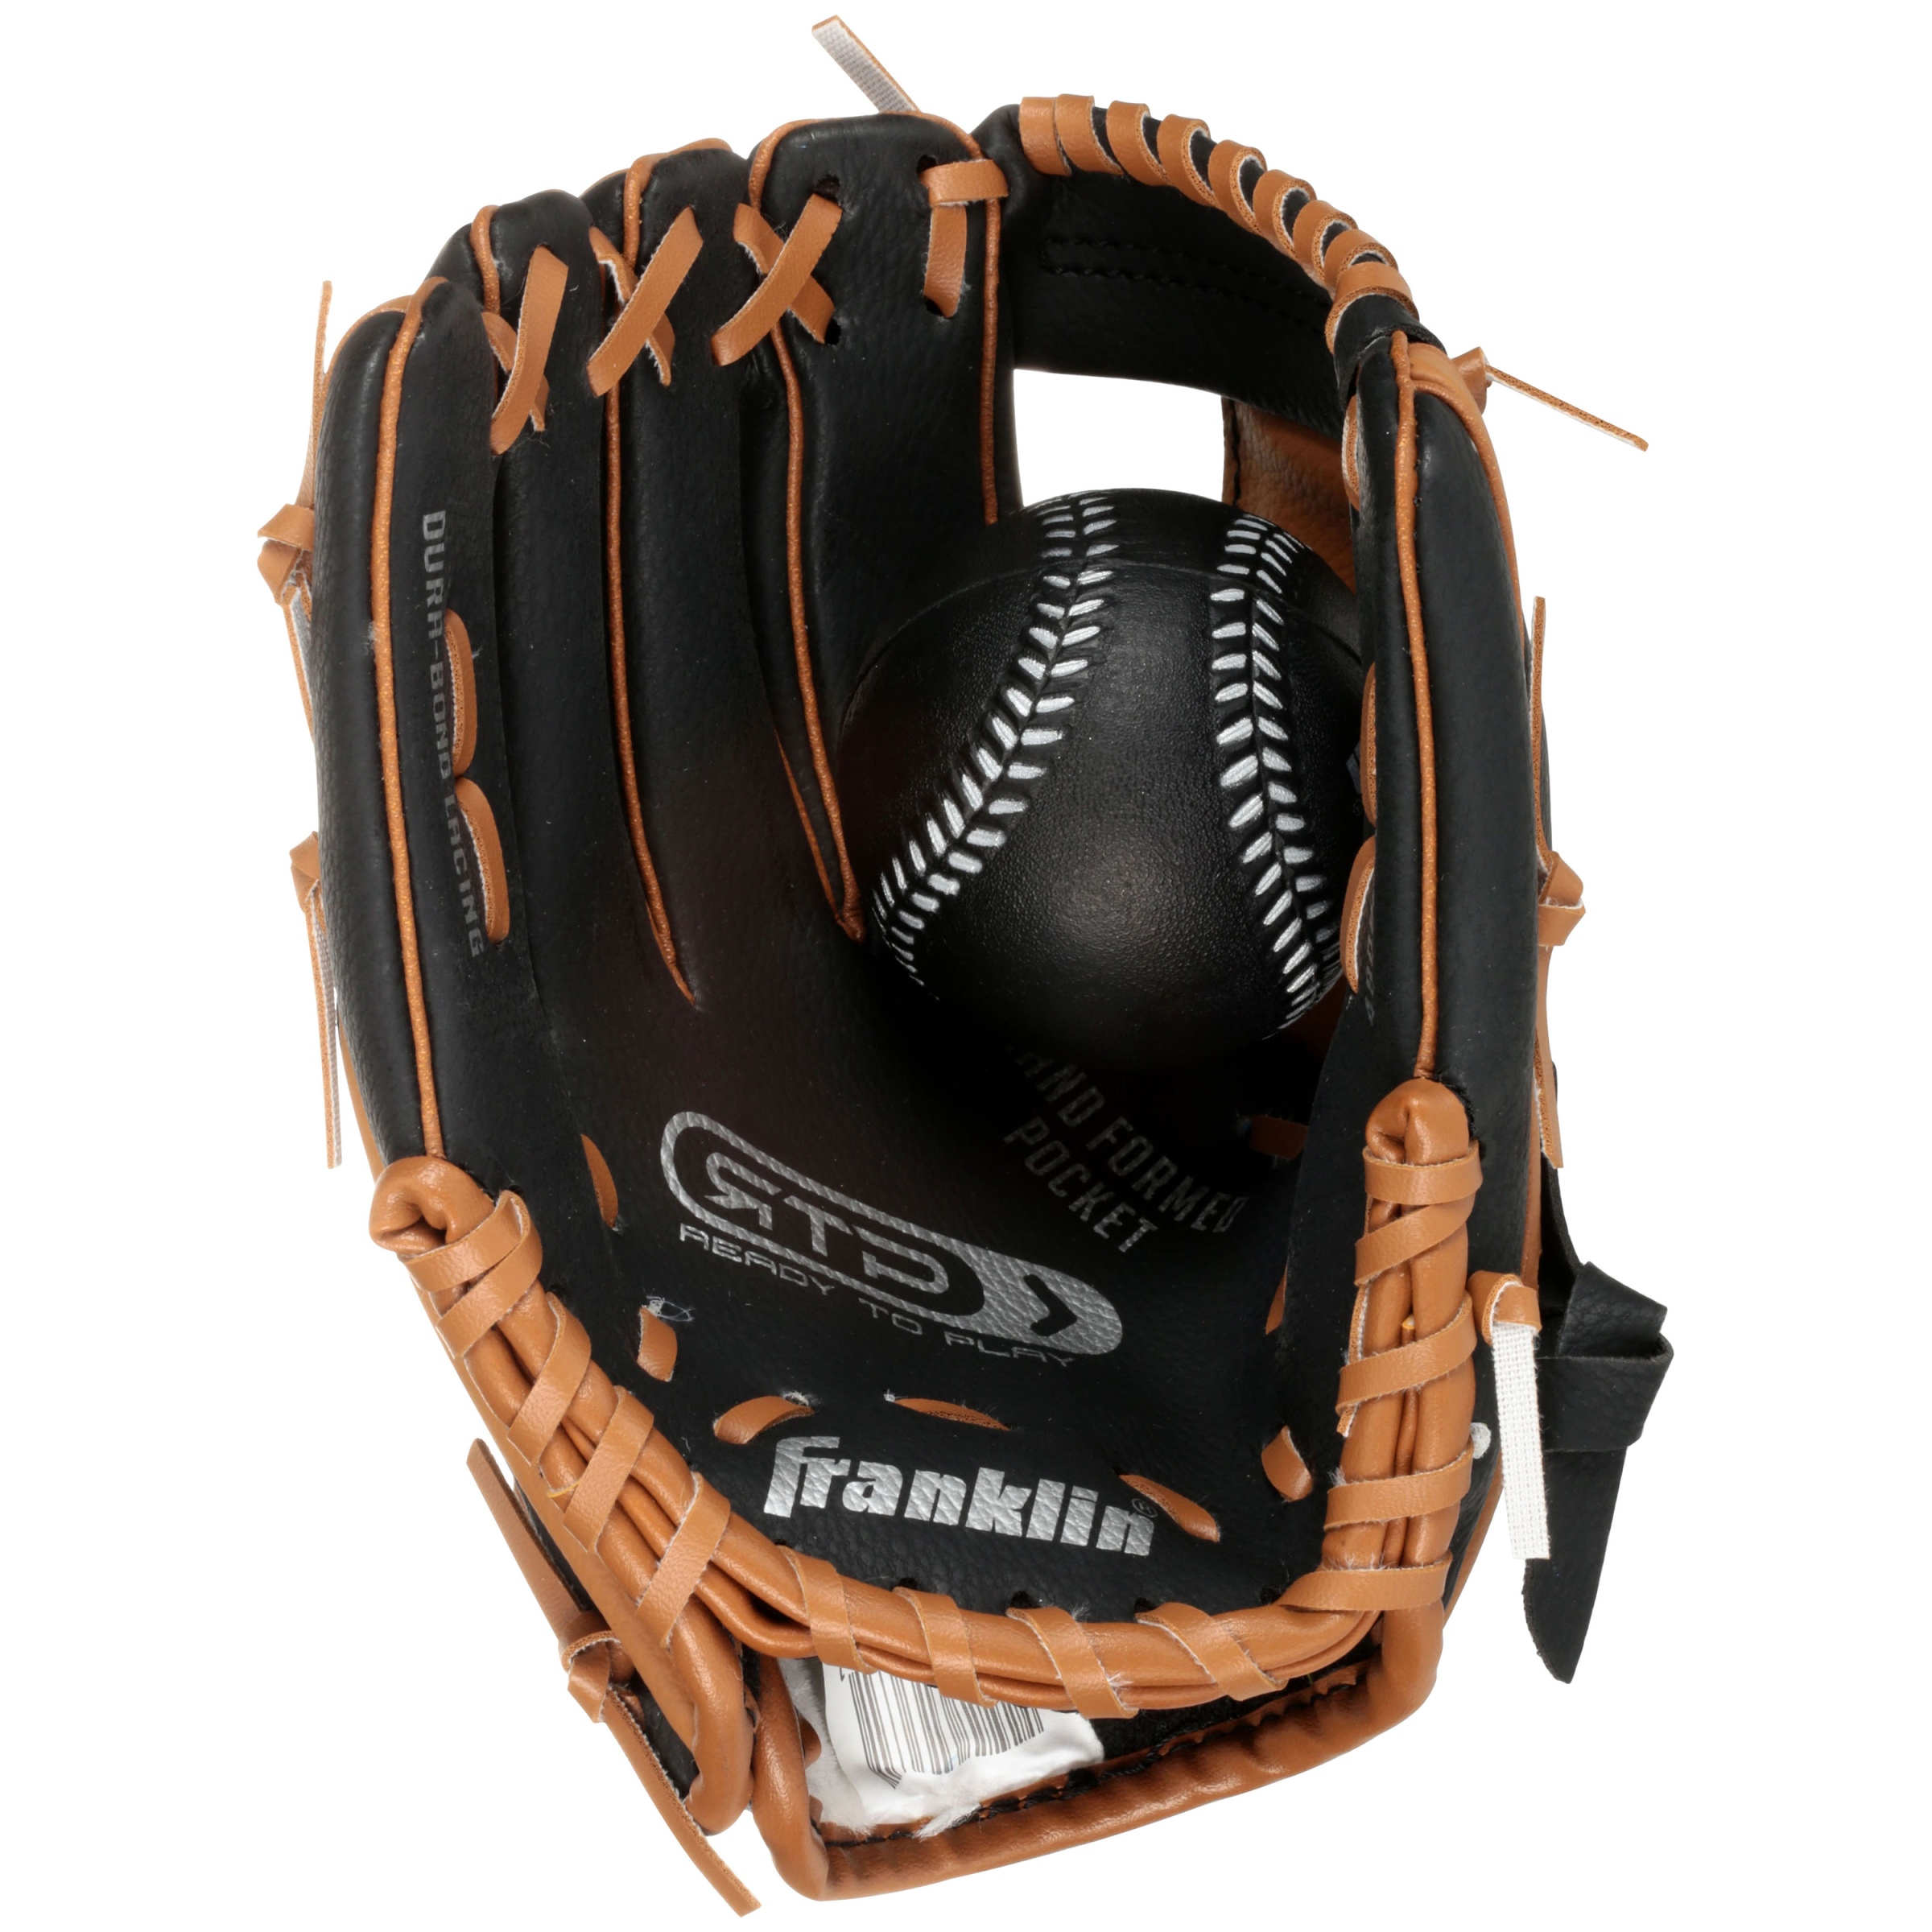 "Franklin 9.5"" Teeball Fielding Glove by Franklin Sports Inc."